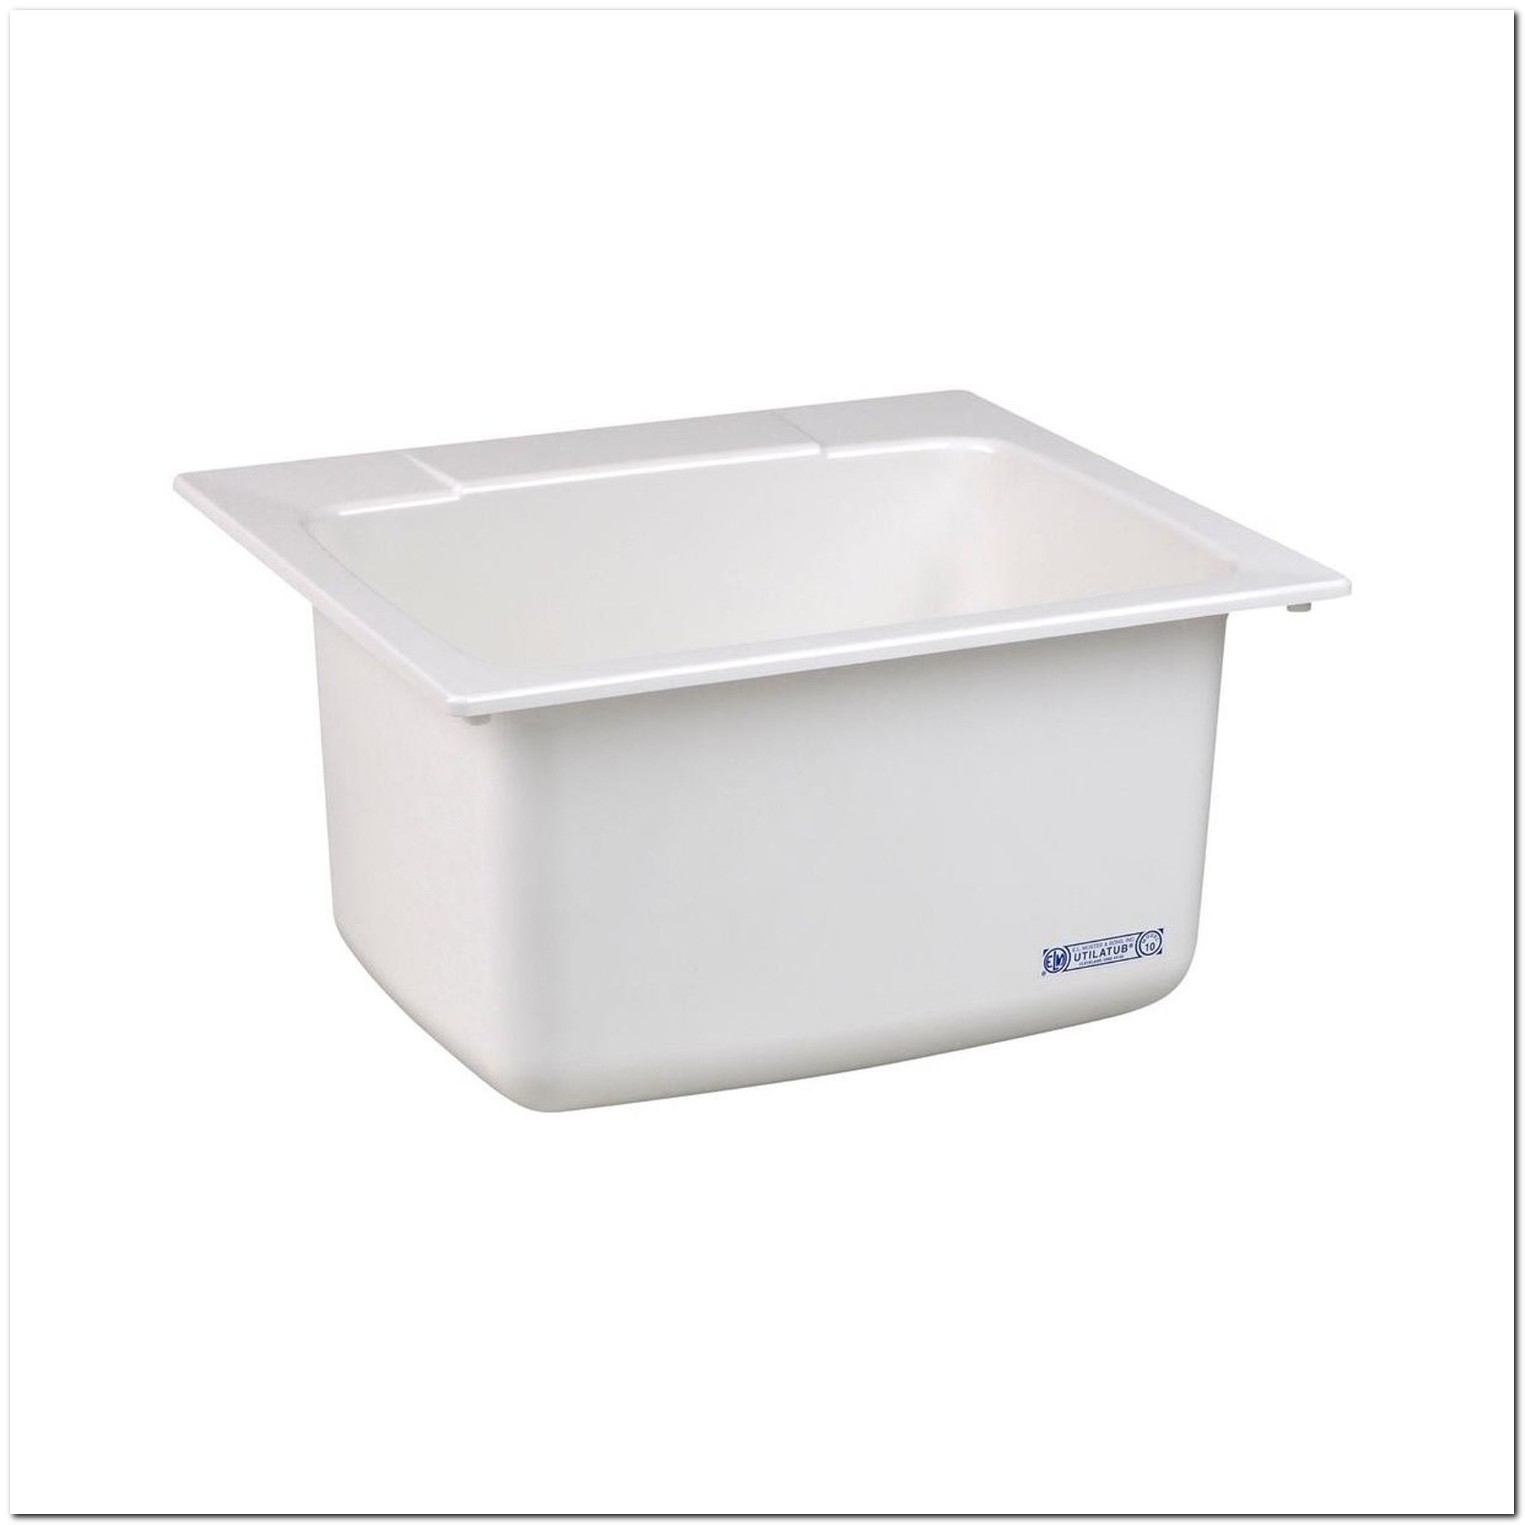 Extra Large Utility Sink Uk